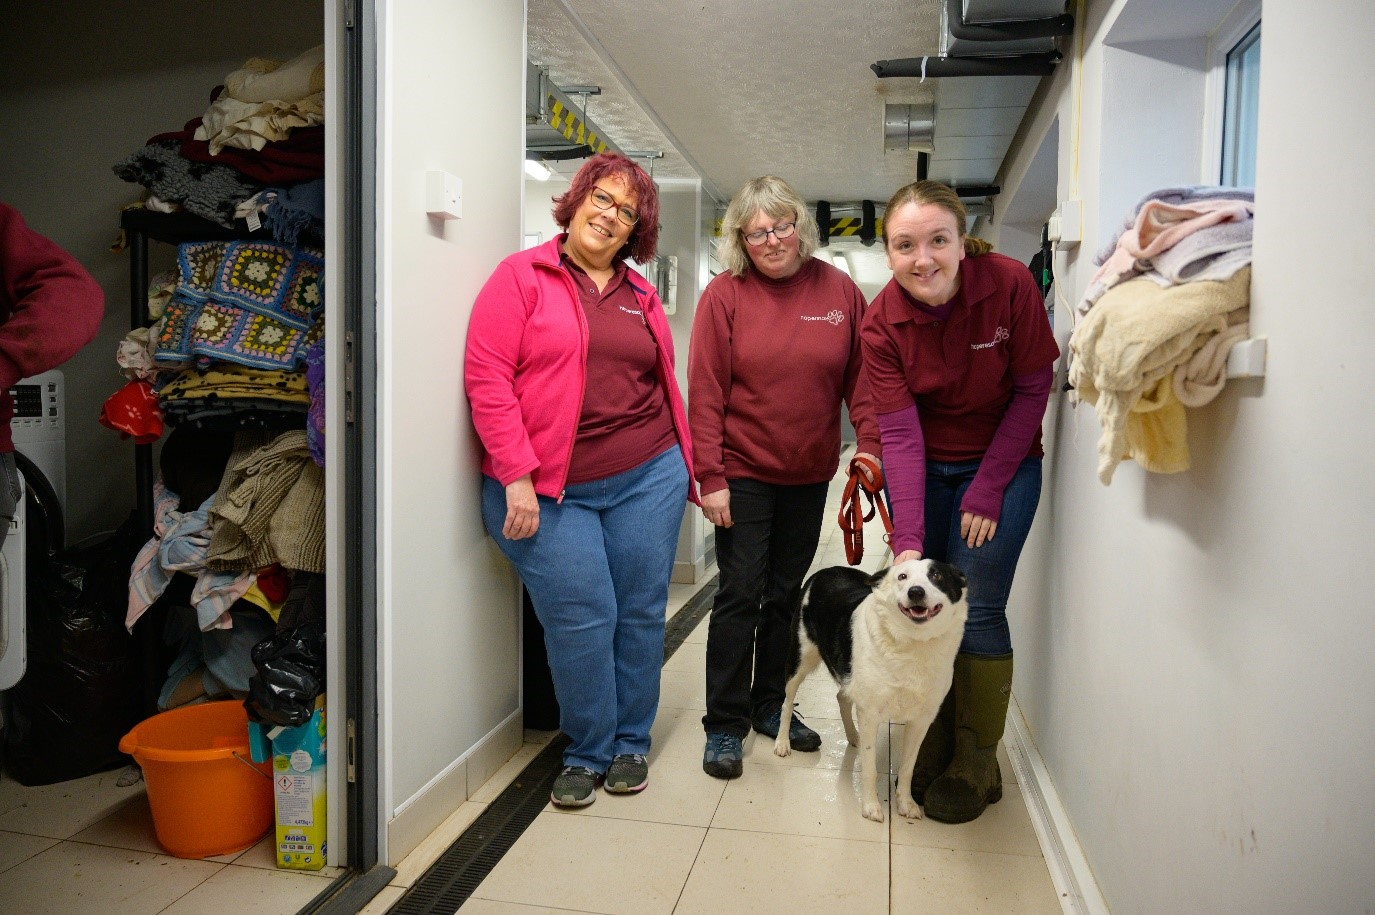 Three smiling women stand in a corridor with a happy dog